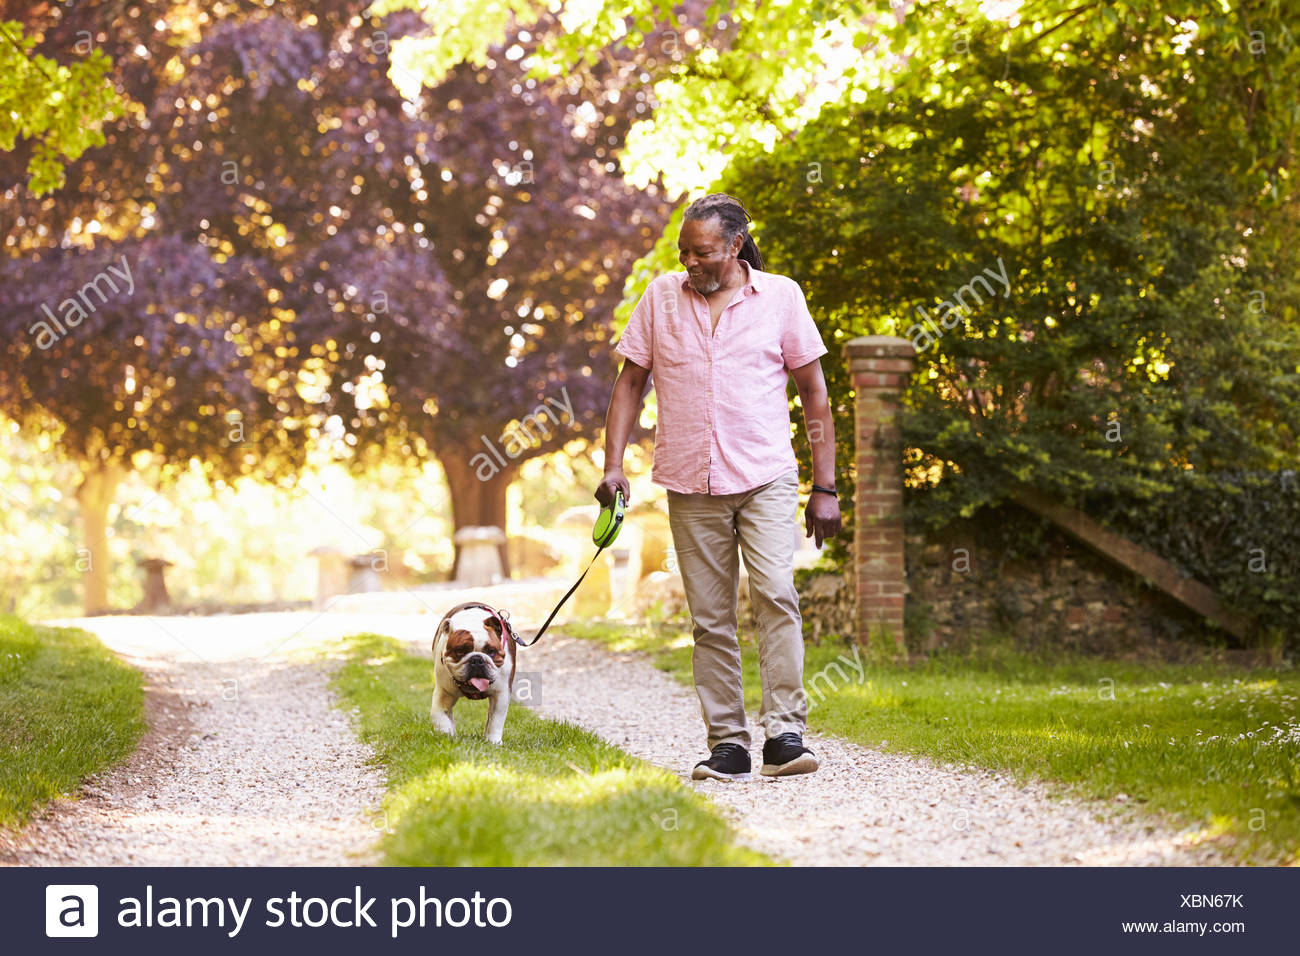 Man Walking with pet dog in countryside Photo Stock